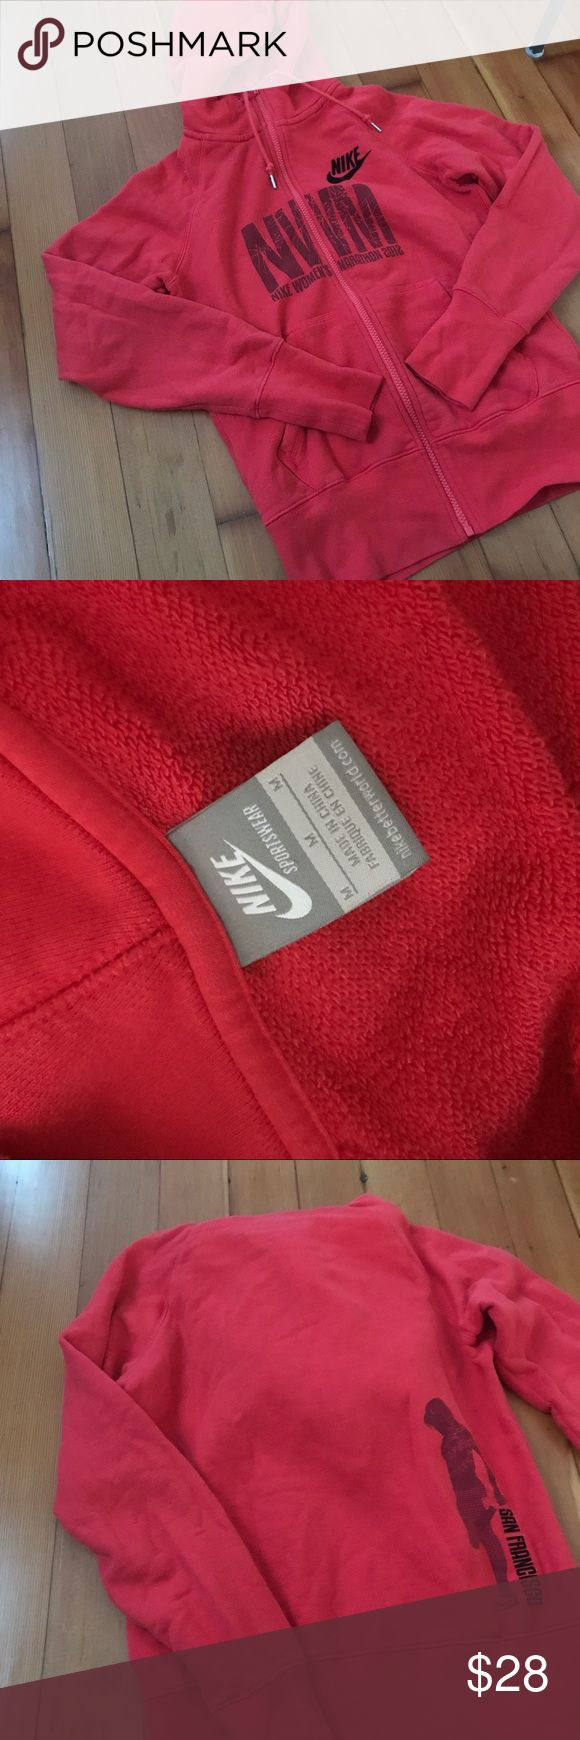 Nike zip up hoodie Worn only a handful of times full zip with drawstrings and hood Nike Jackets & Coats